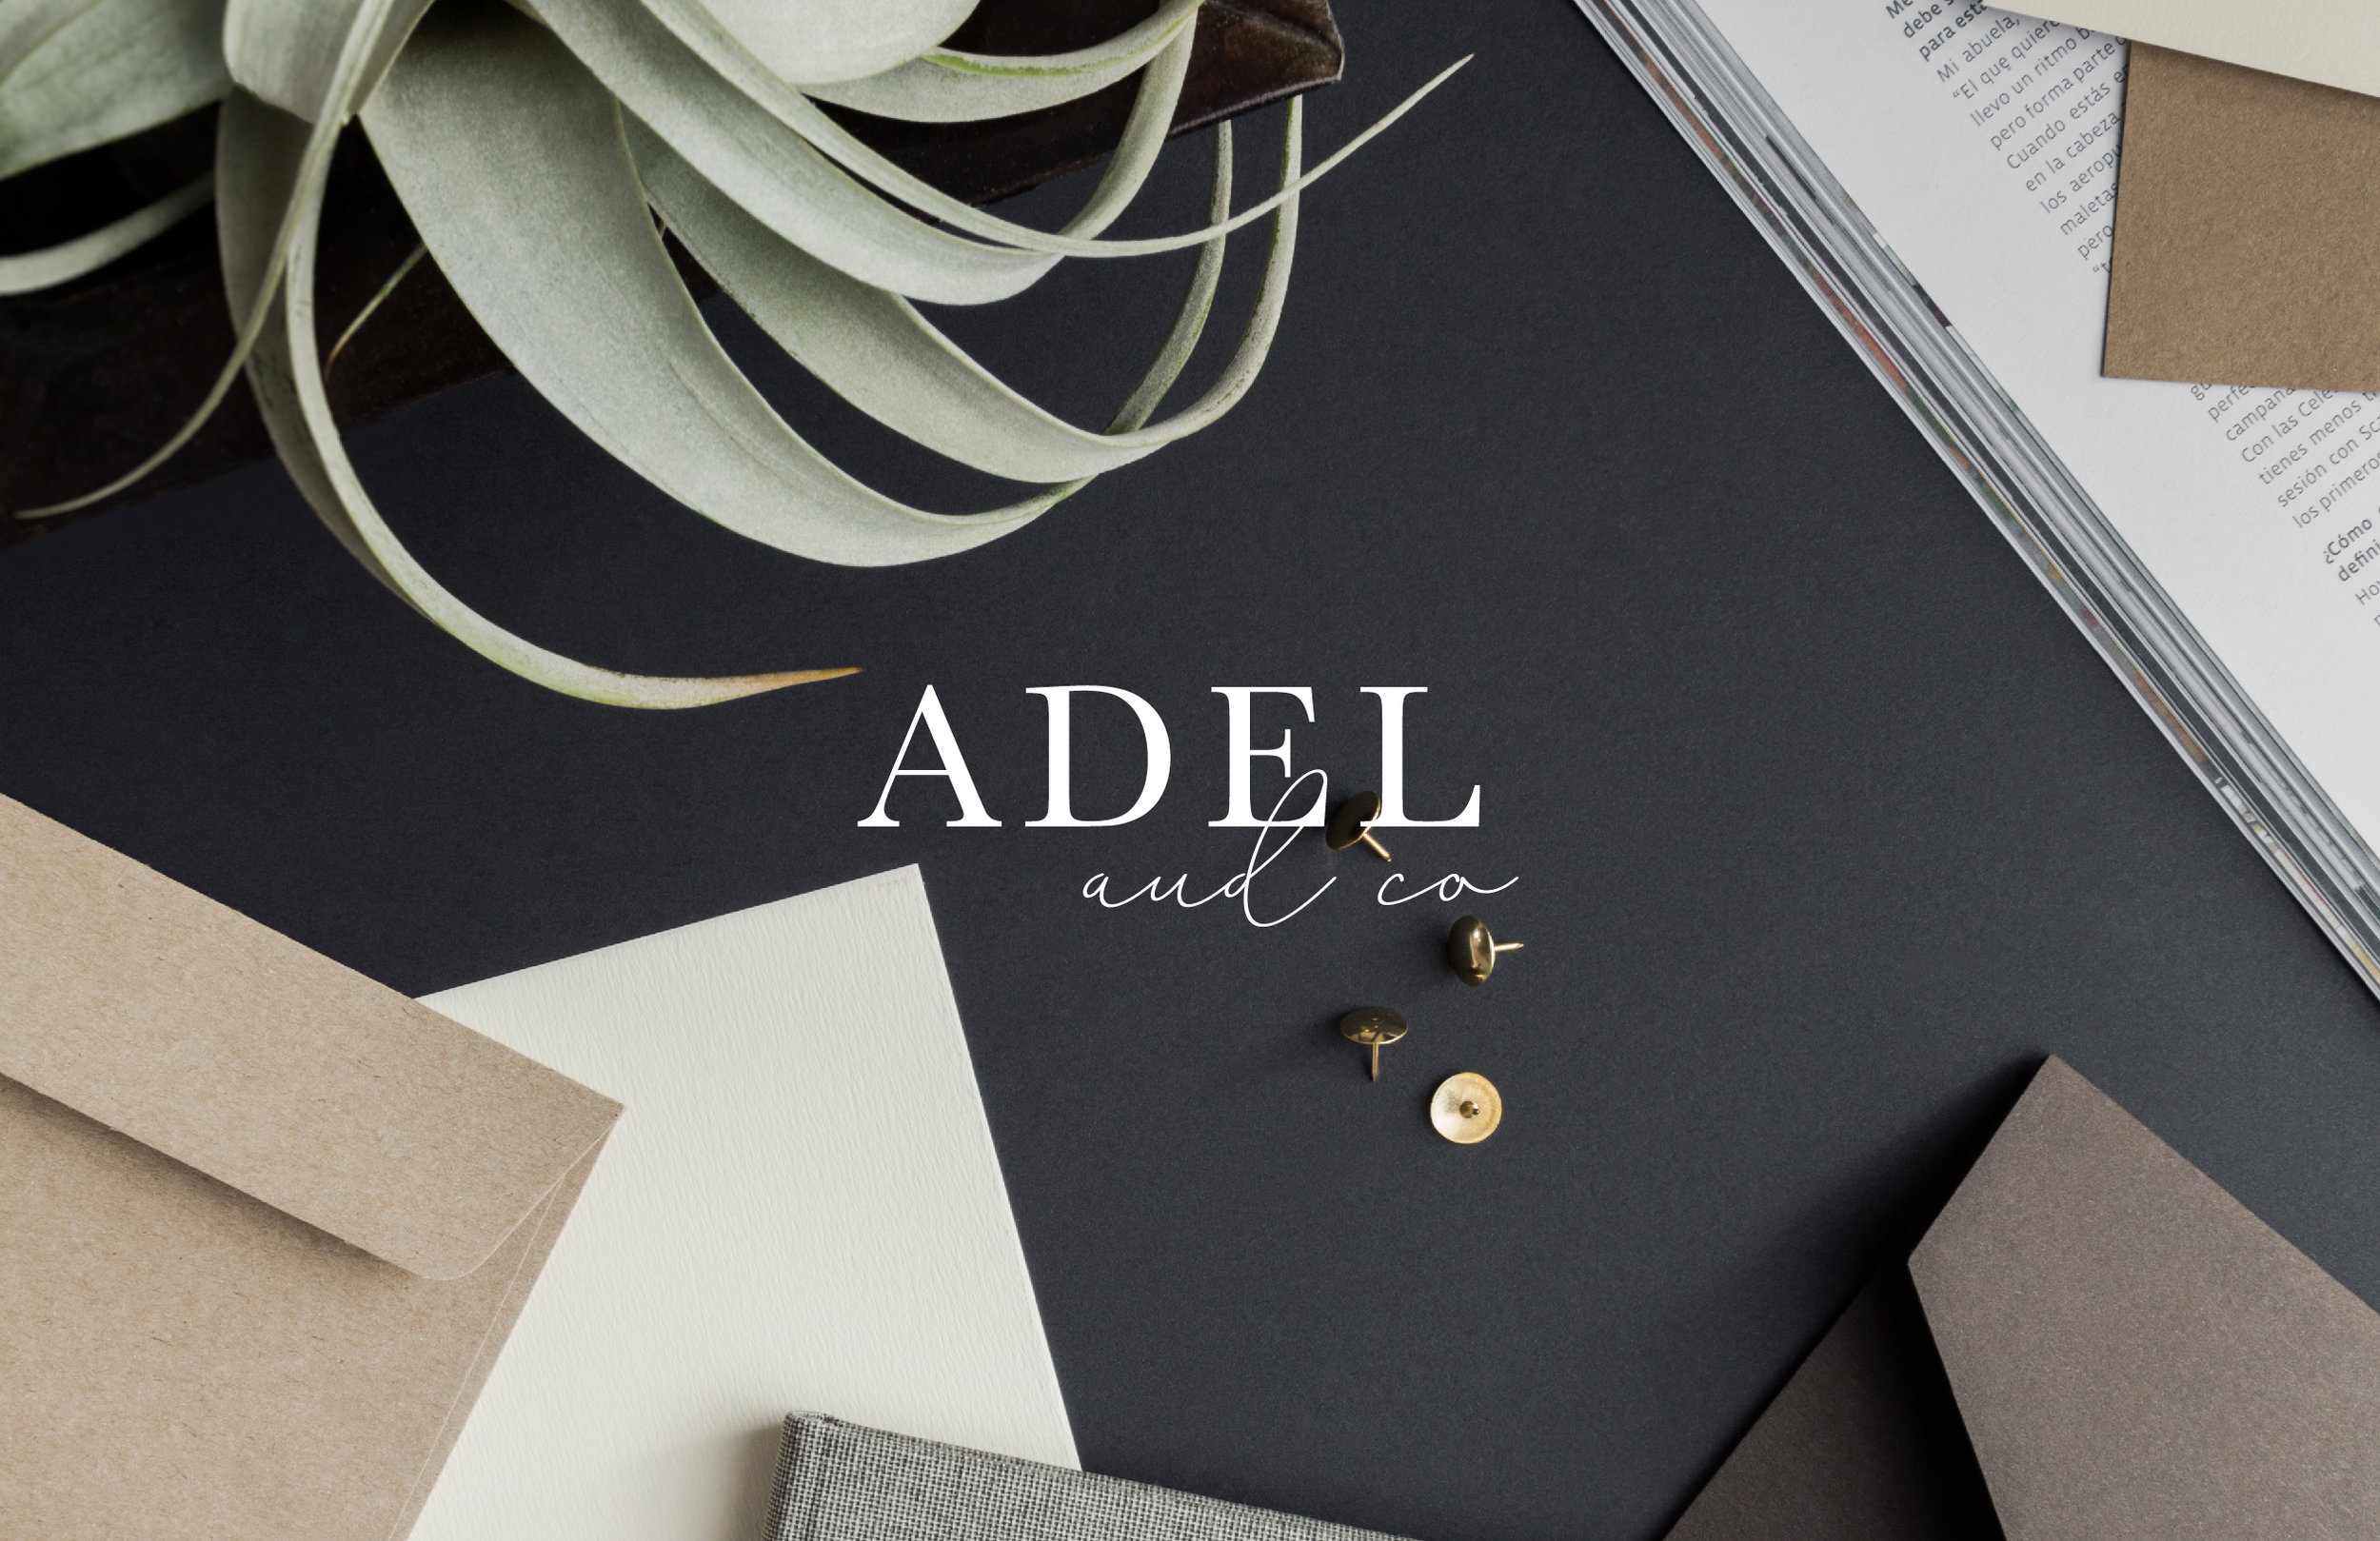 Adel & Co over image - by January Made Design